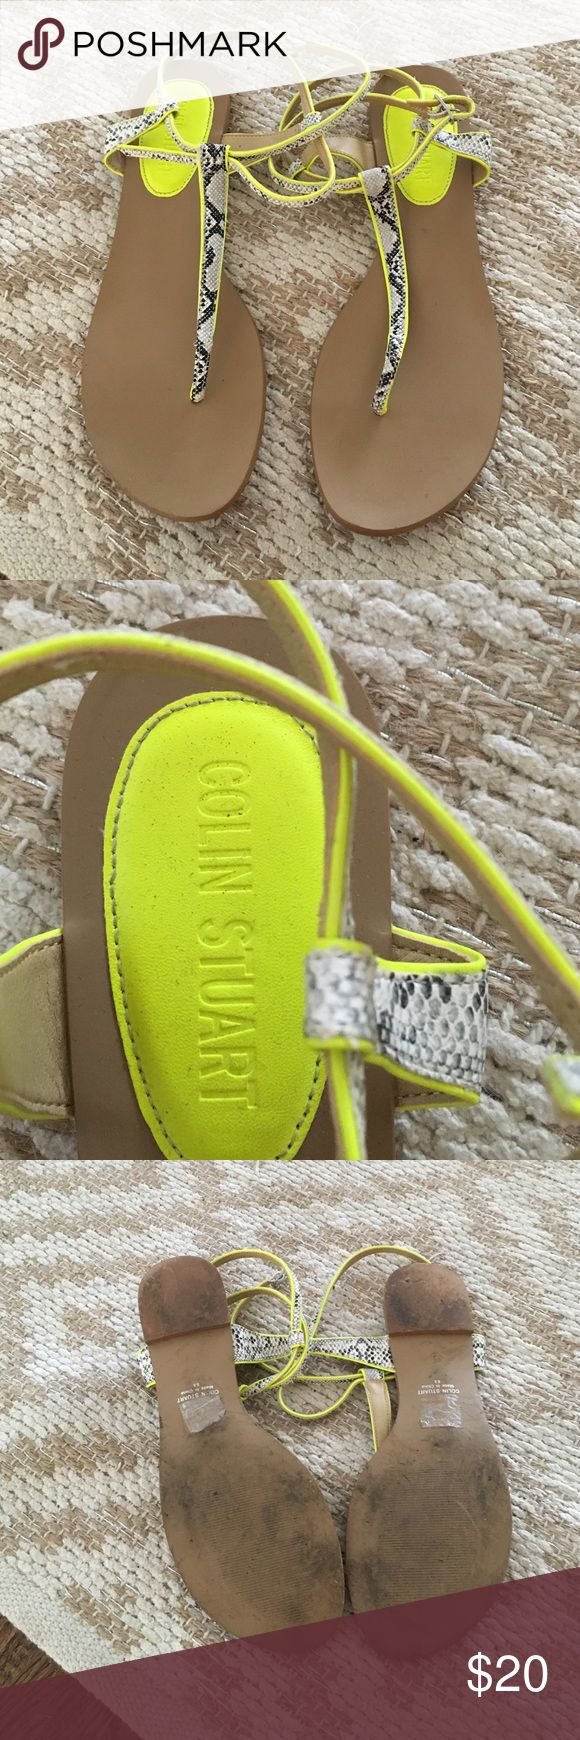 Colin Stuart yellow neon snake print flat sandals Wrap around closure. Colin Stuart Shoes Sandals